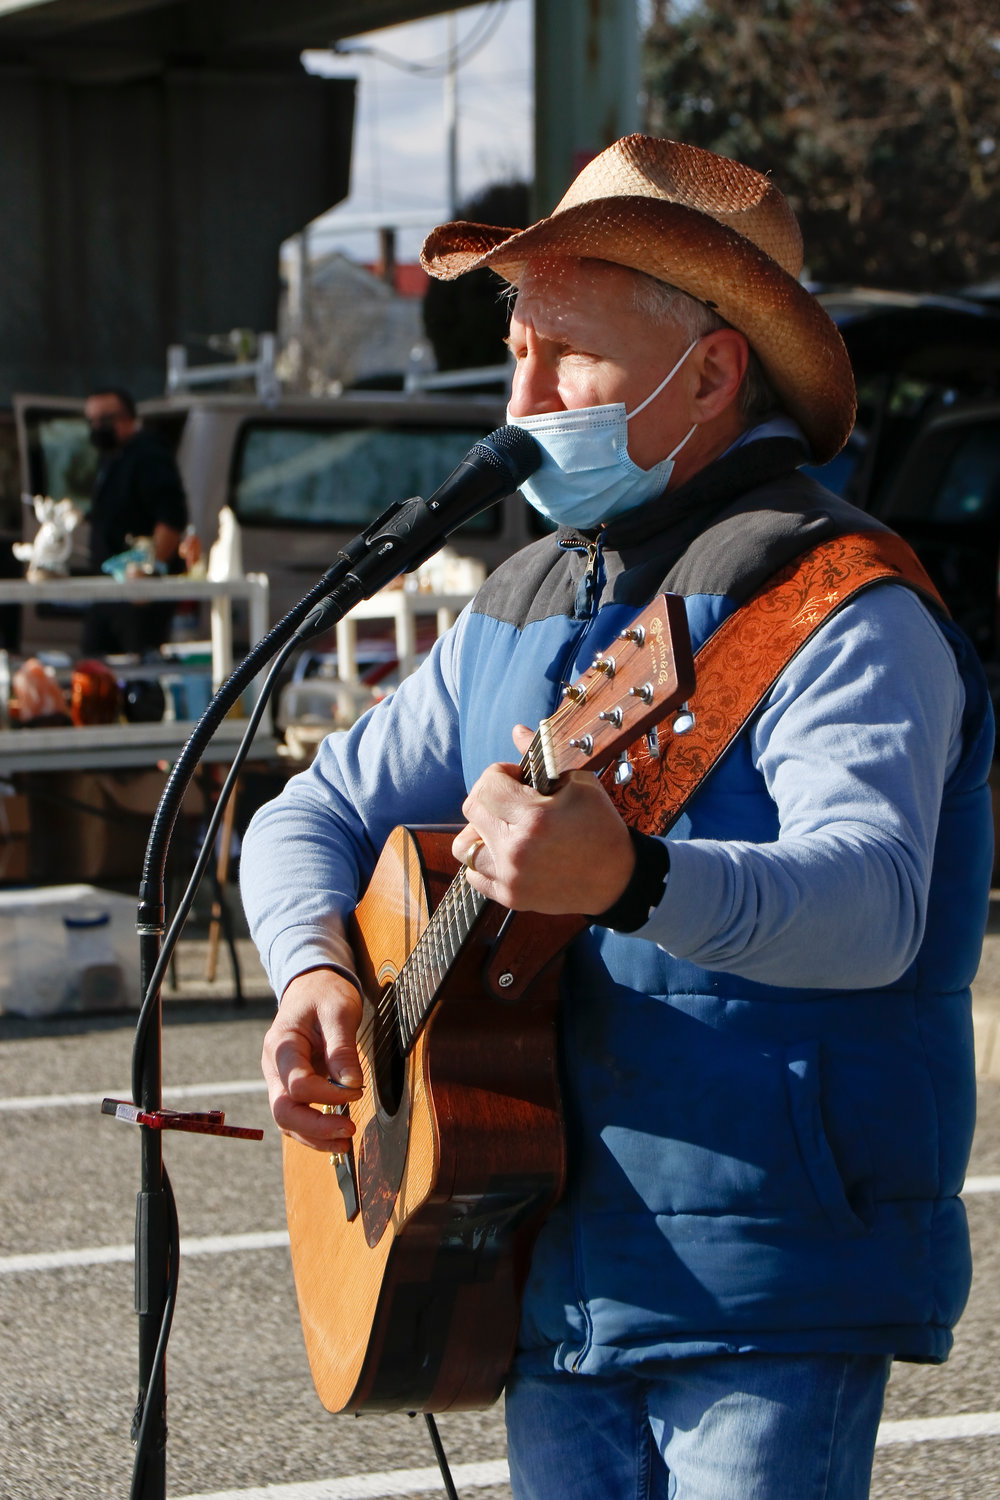 Because of the pandemic, The Guitar Guy, Russell Breiter, hasn't been able to perform indoors. He sang a variety of classic rock songs at the weekly outdoor market.